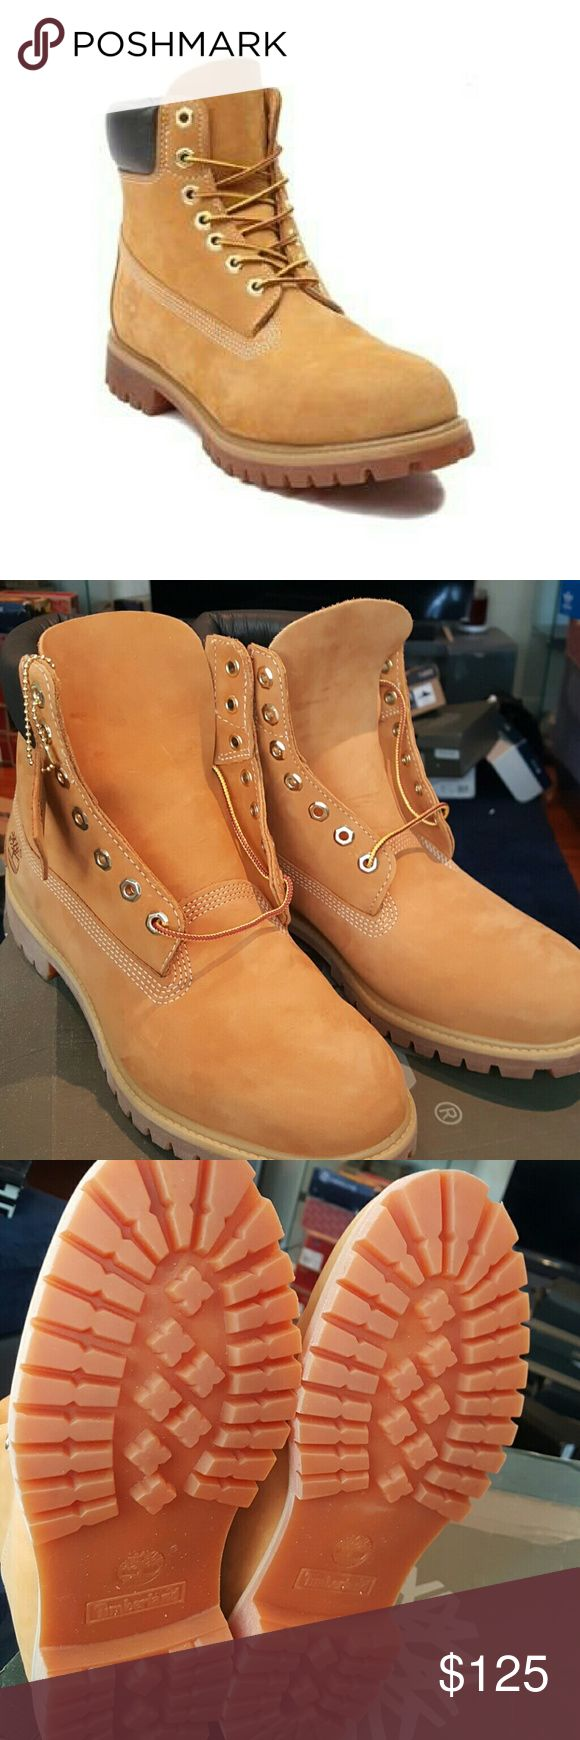 """Mens Timberland 6"""" Classic Boot Box is a little beat up.  The original Timberland? boot, first designed nearly forty years ago and a staple in millions of closets, mudrooms and garages around the globe. Timberland has been selling this classic style for nearly 40 years and made some improvements along the way, such as the addition of its exclusive anti-fatigue comfort technology, but its six-inch boots remain just as sturdy and dependable as always. Premium waterproof leather, seam-sealed…"""